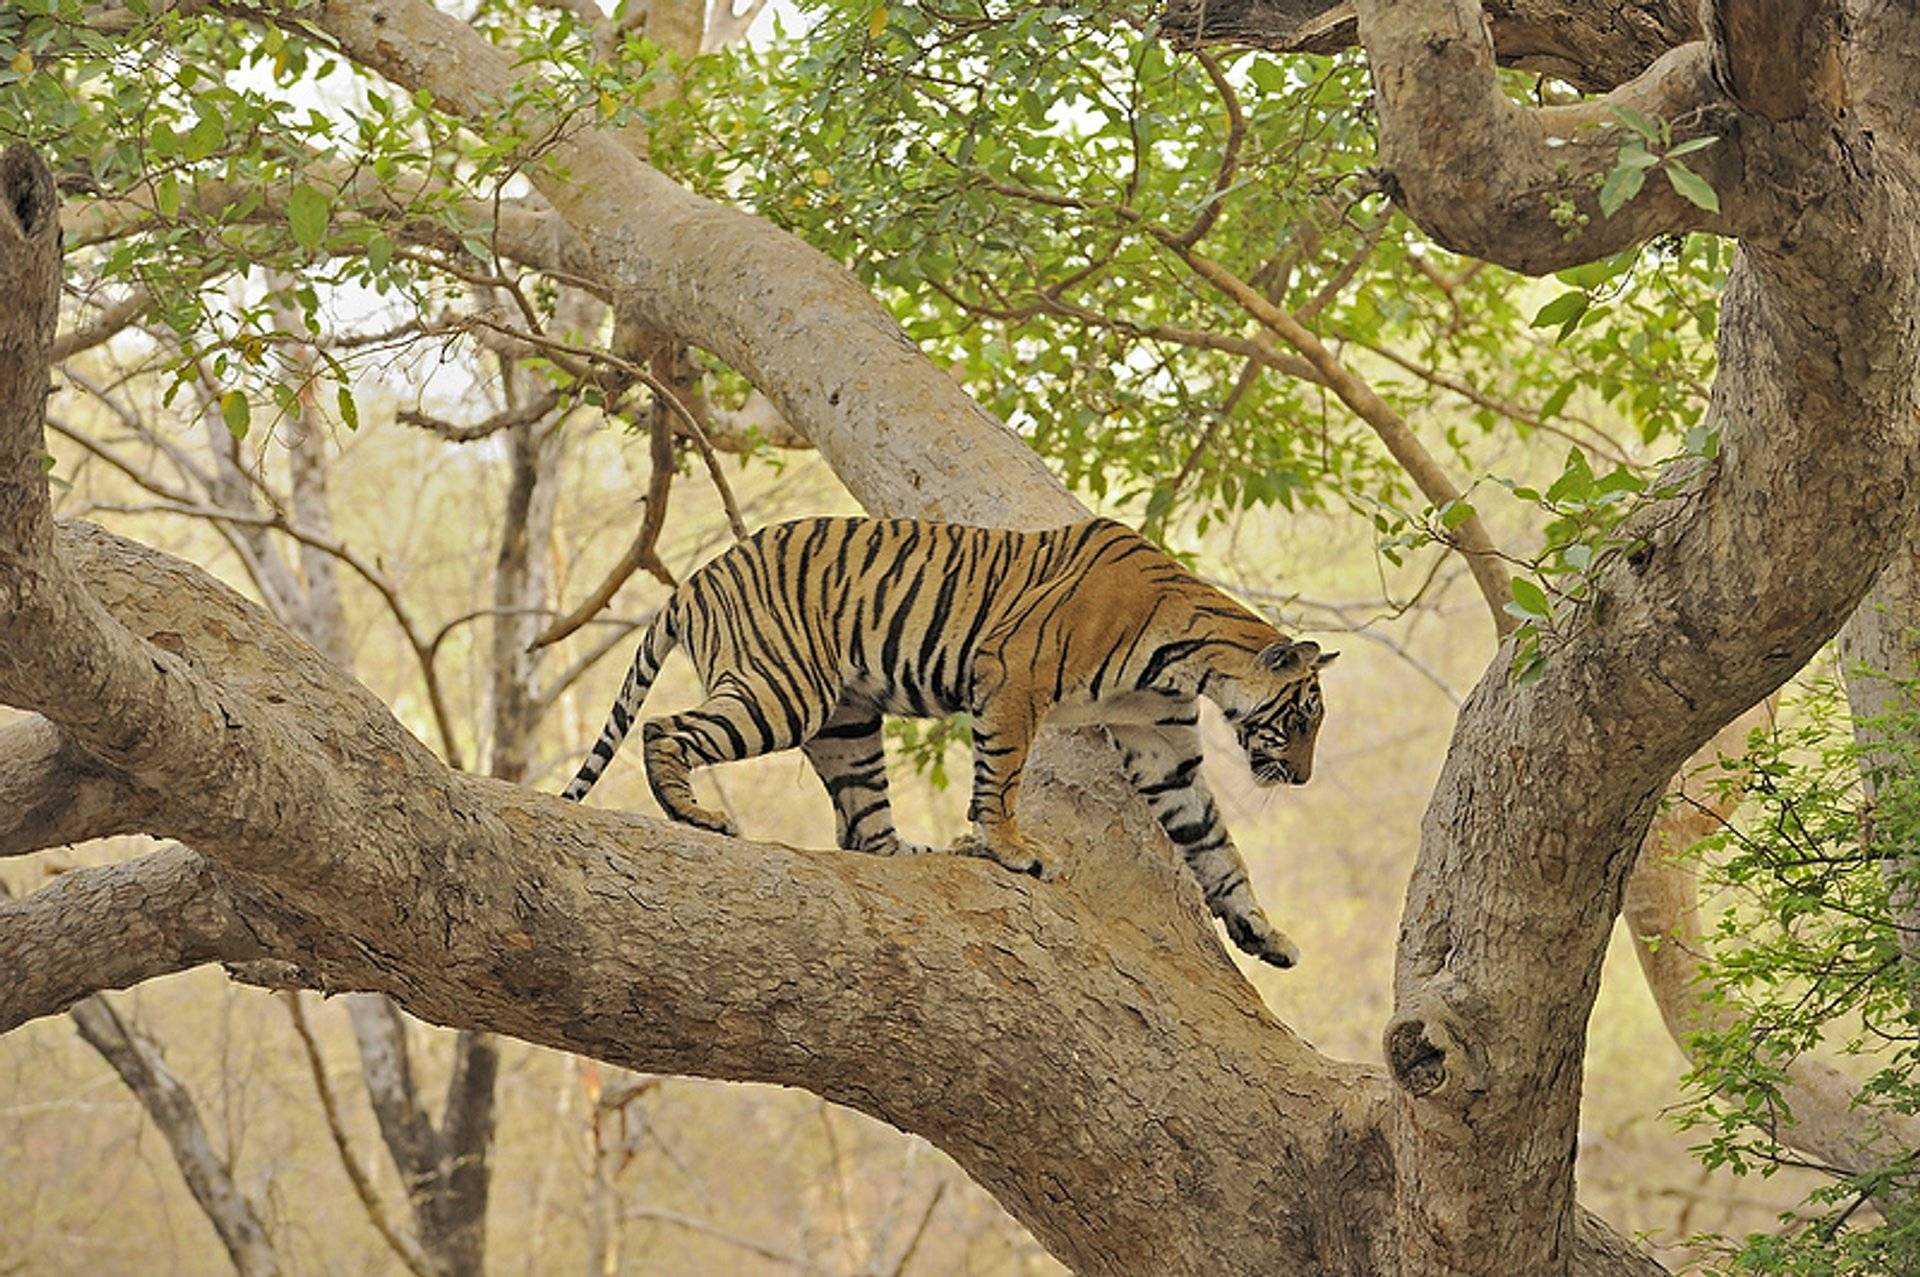 Tiger Safari in Ranthambore National Park in Taj Mahal and Agra  - Best Season